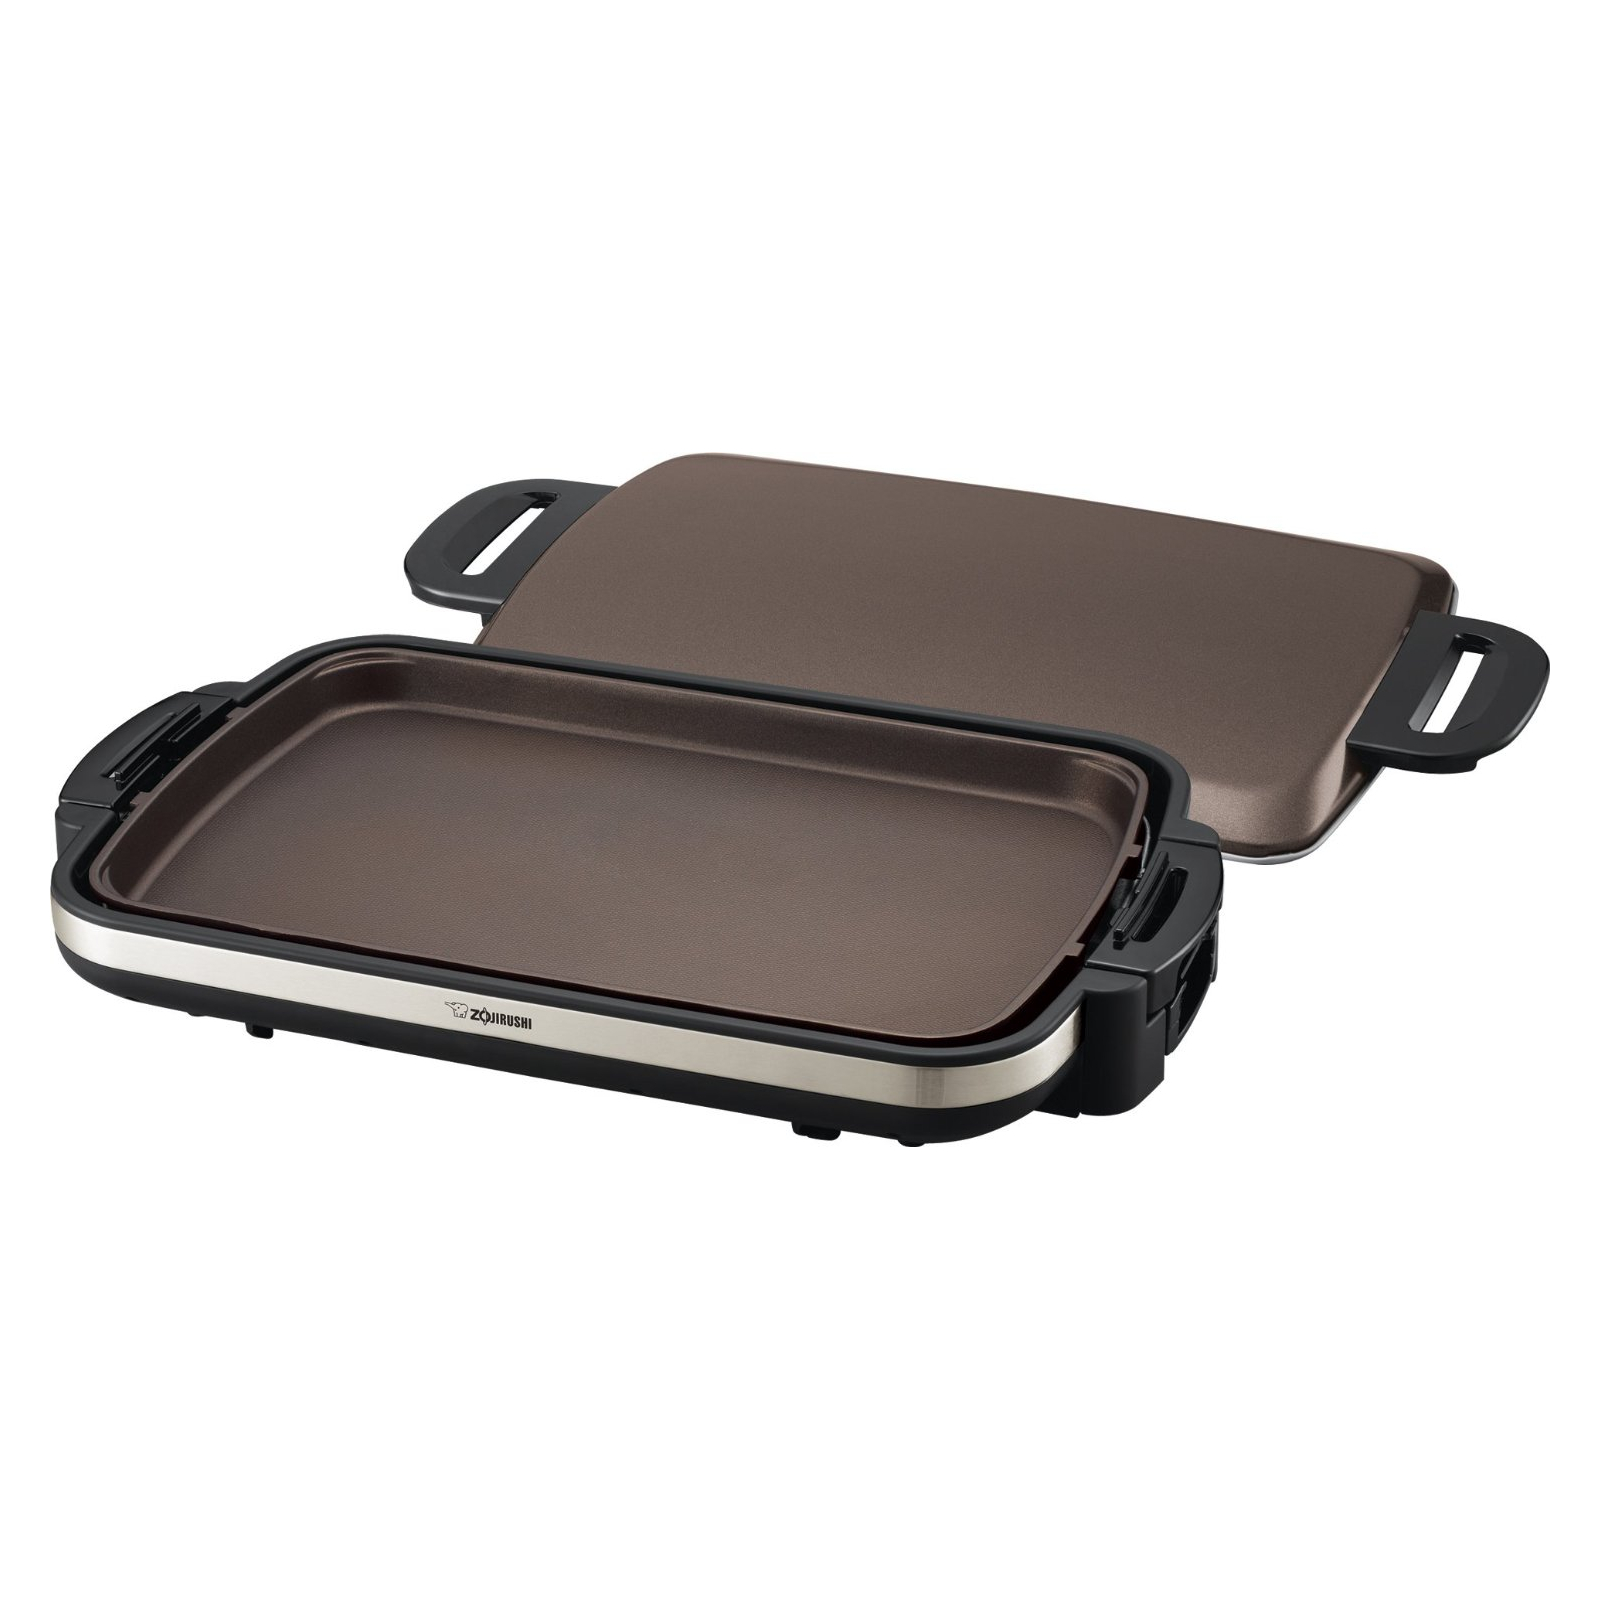 Zojirushi Gourmet Sizzler Stainless Brown Electric Griddle